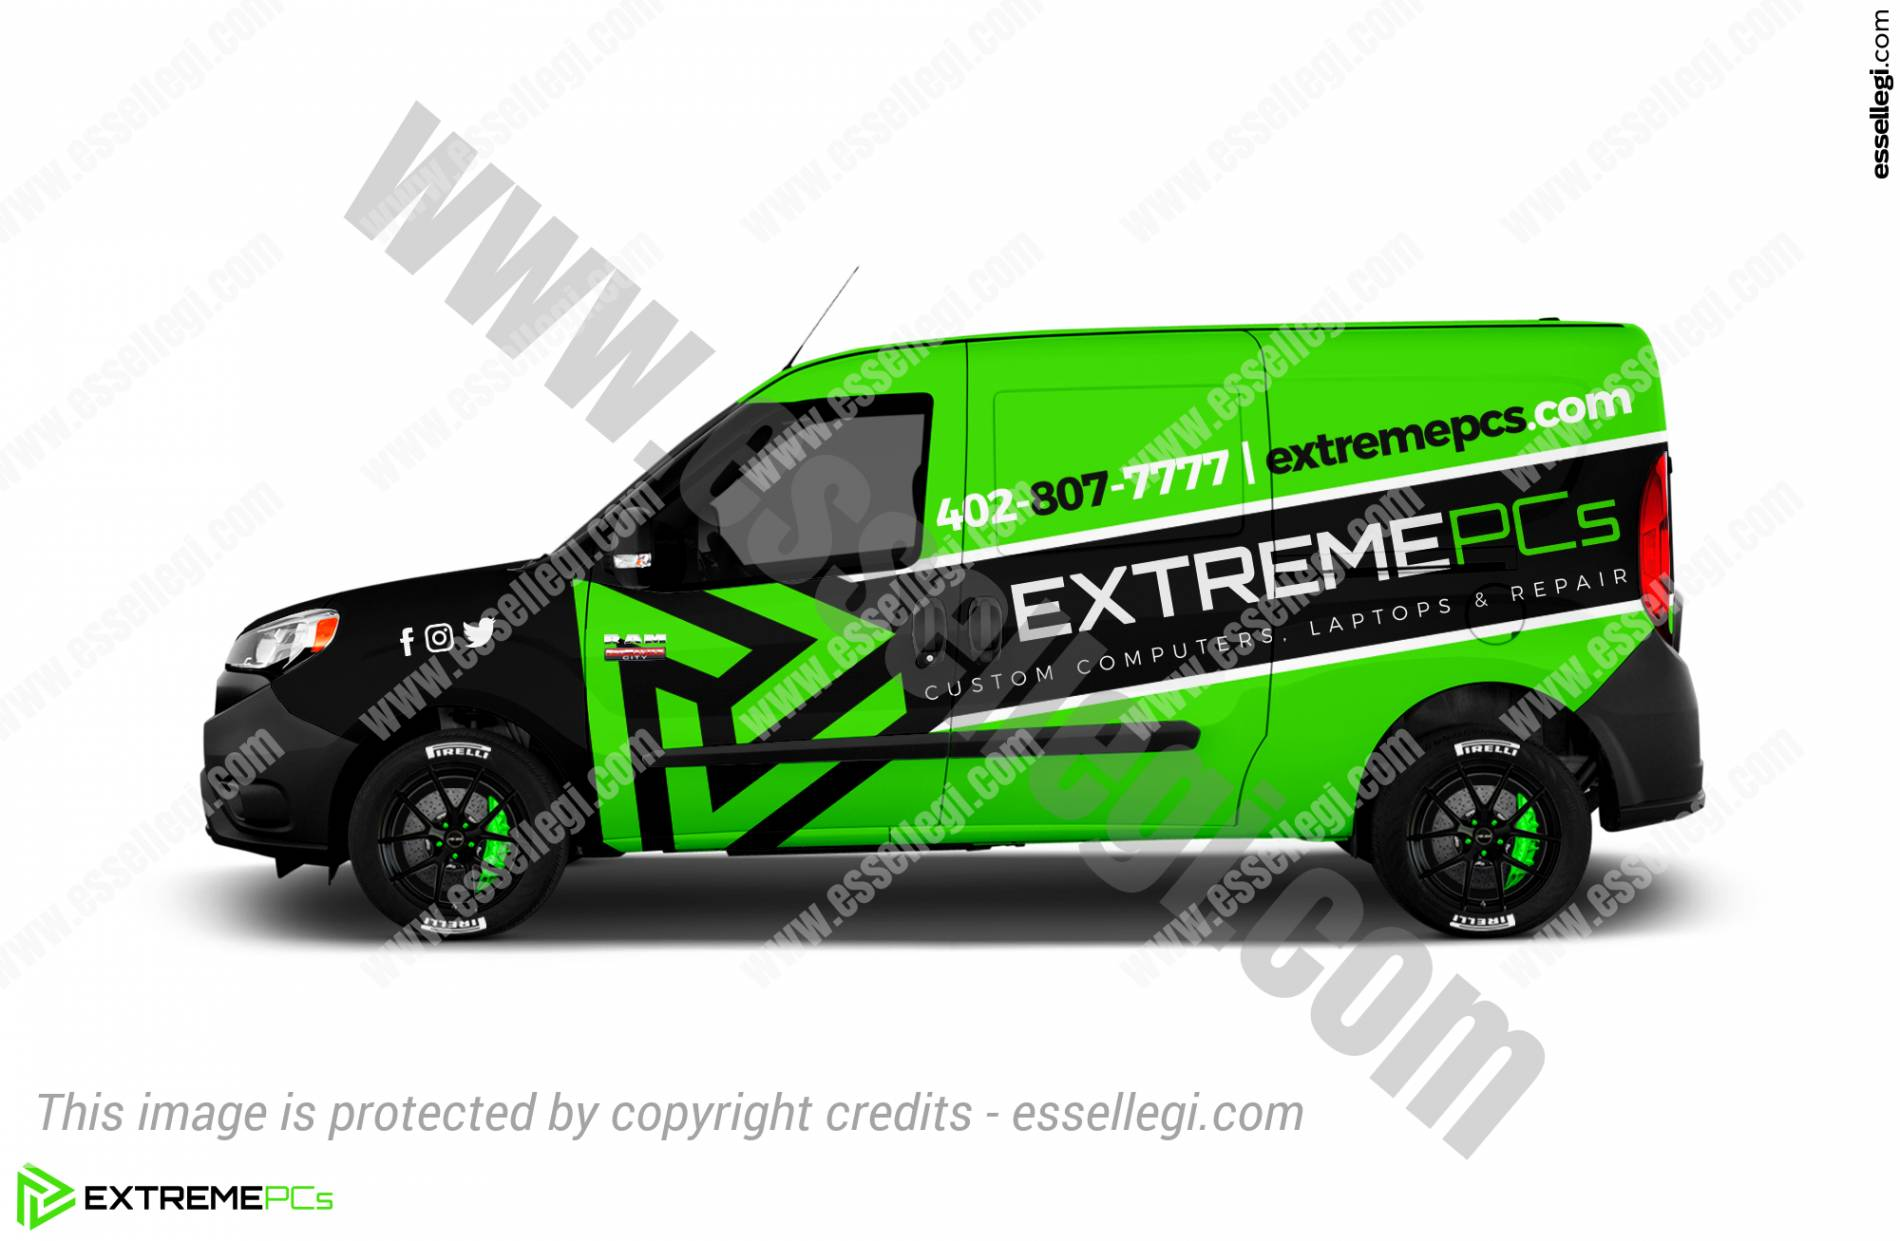 EXTREME PCS | VAN WRAP DESIGN 🇺🇸